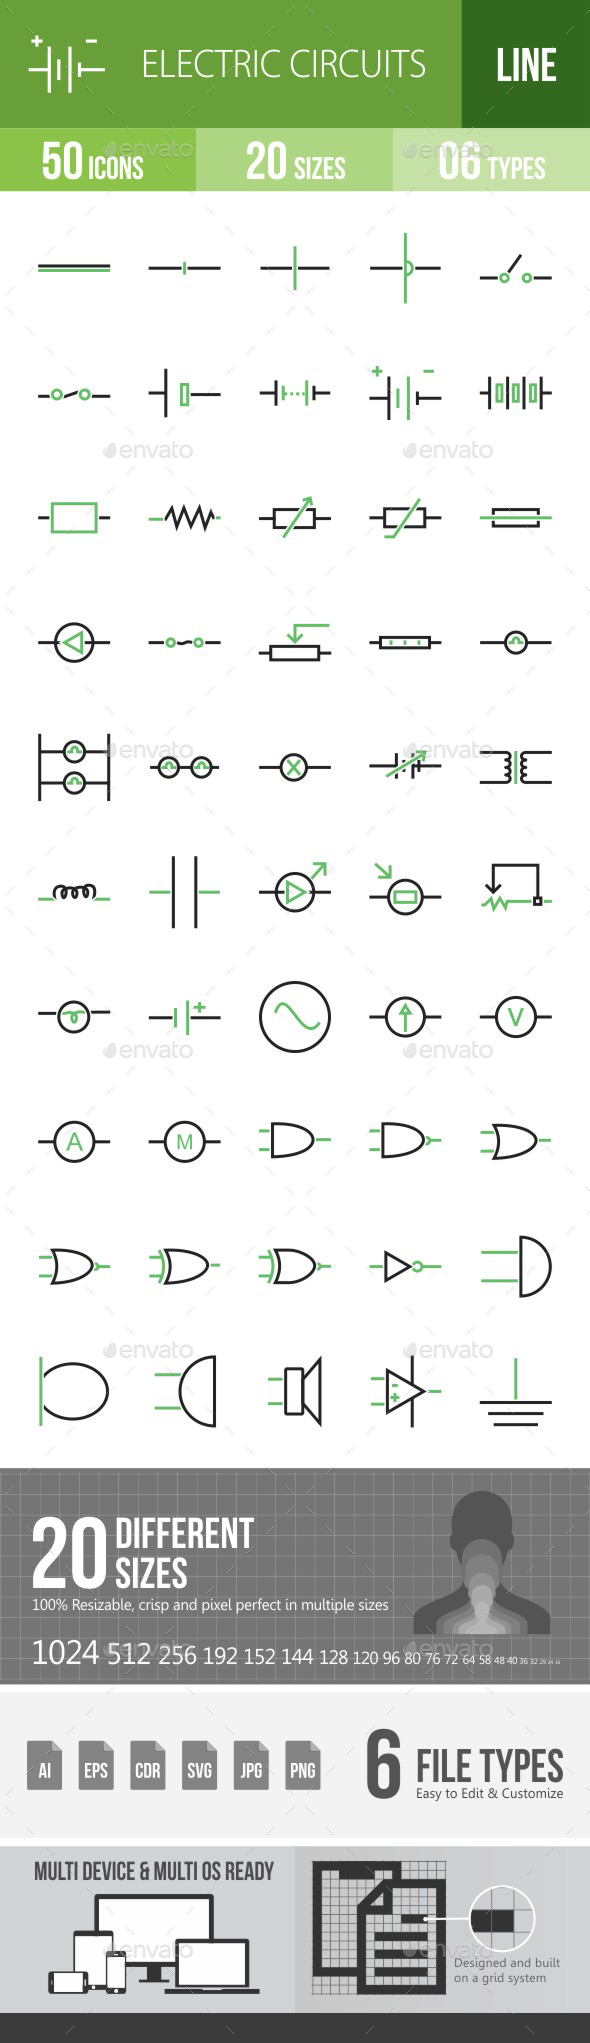 Electric Circuits Green & Black Icons - Icons